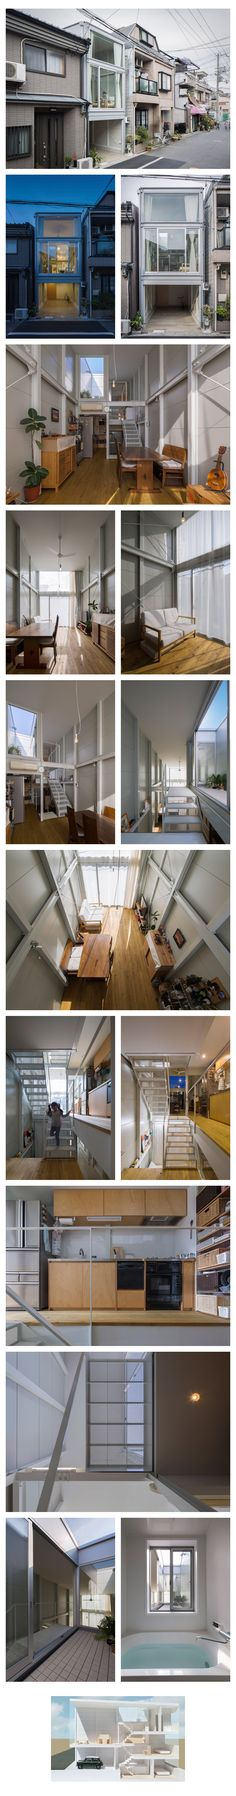 3.4-metre-wide home in Japan sandwiched between a pair of existing properties in Osaka | by Yoshihiro Yamamoto @dezeen